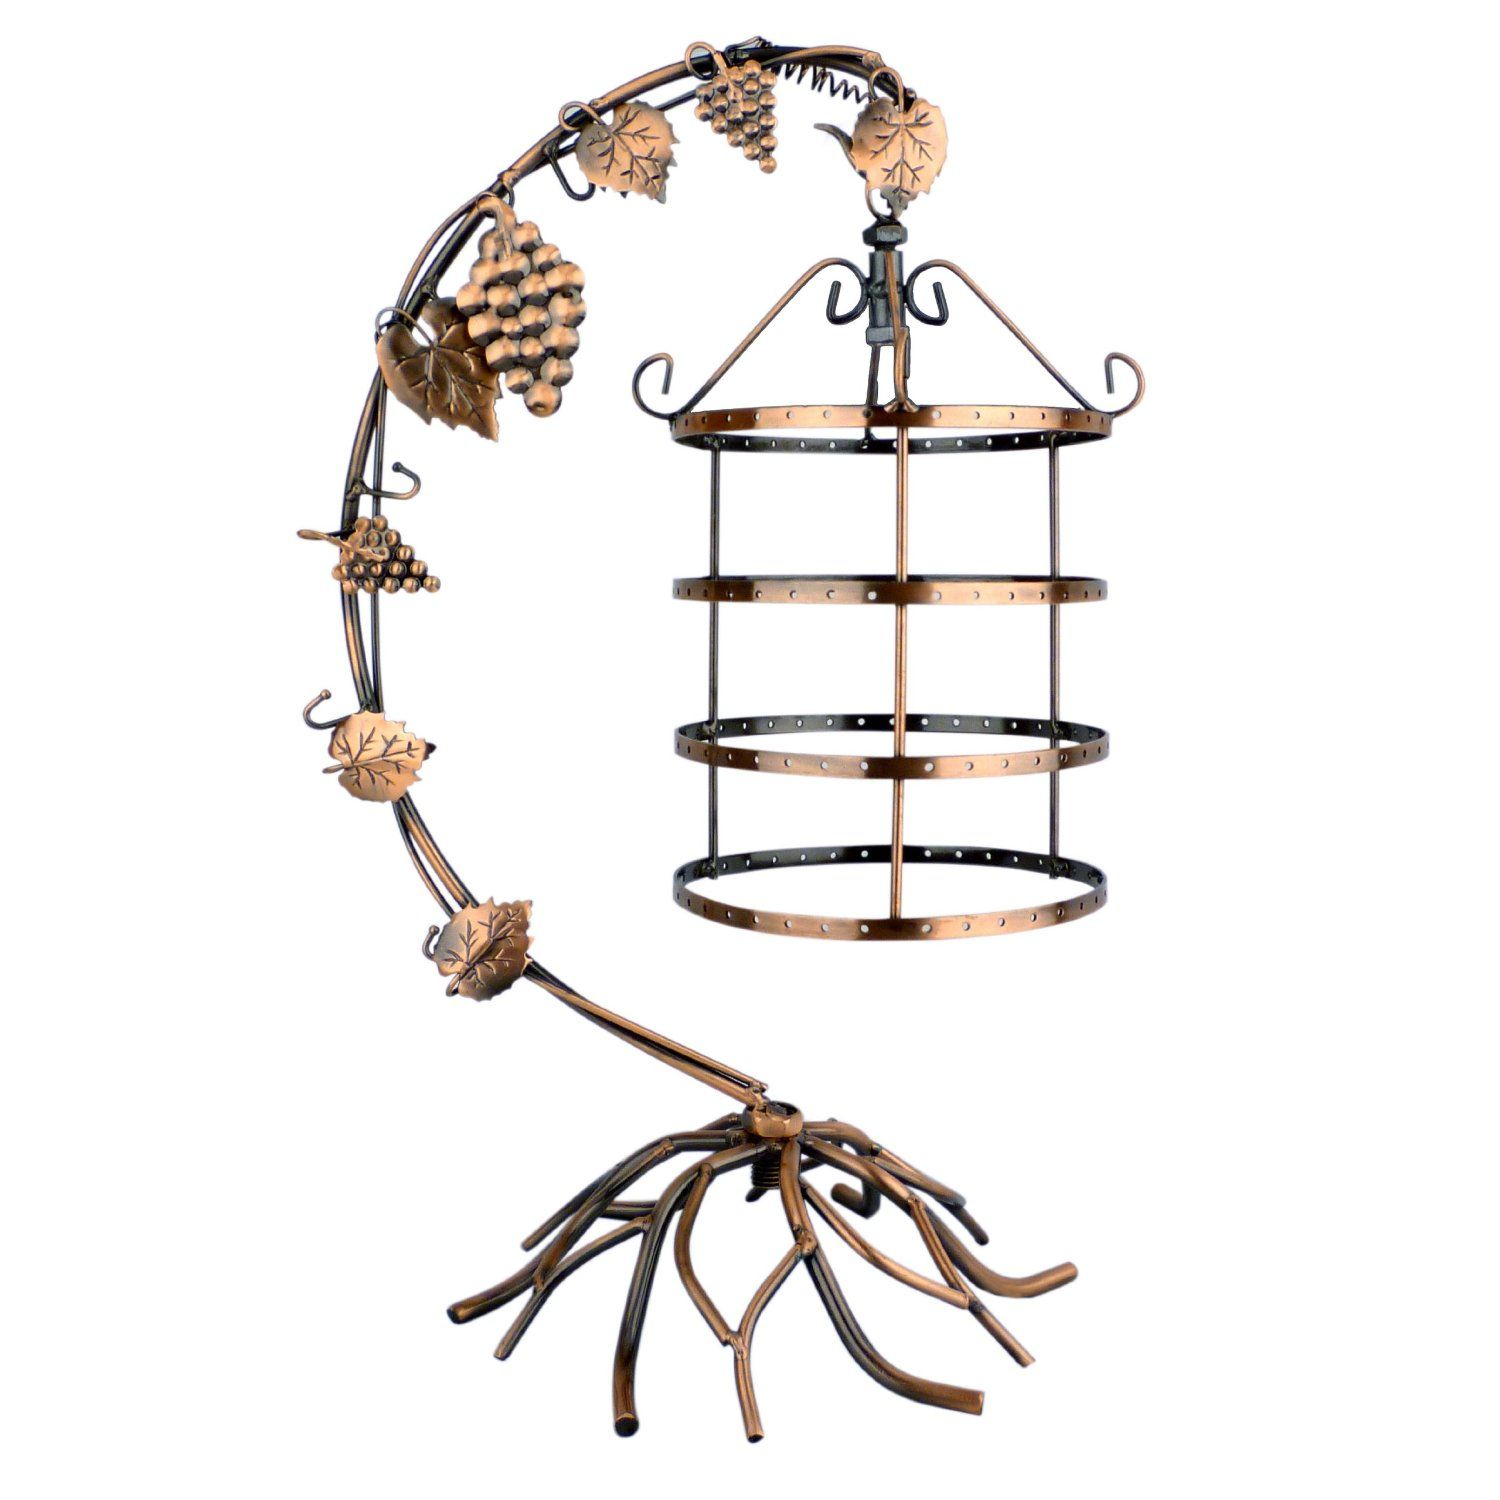 creative earring holder nature theme Boutique Design Pinterest